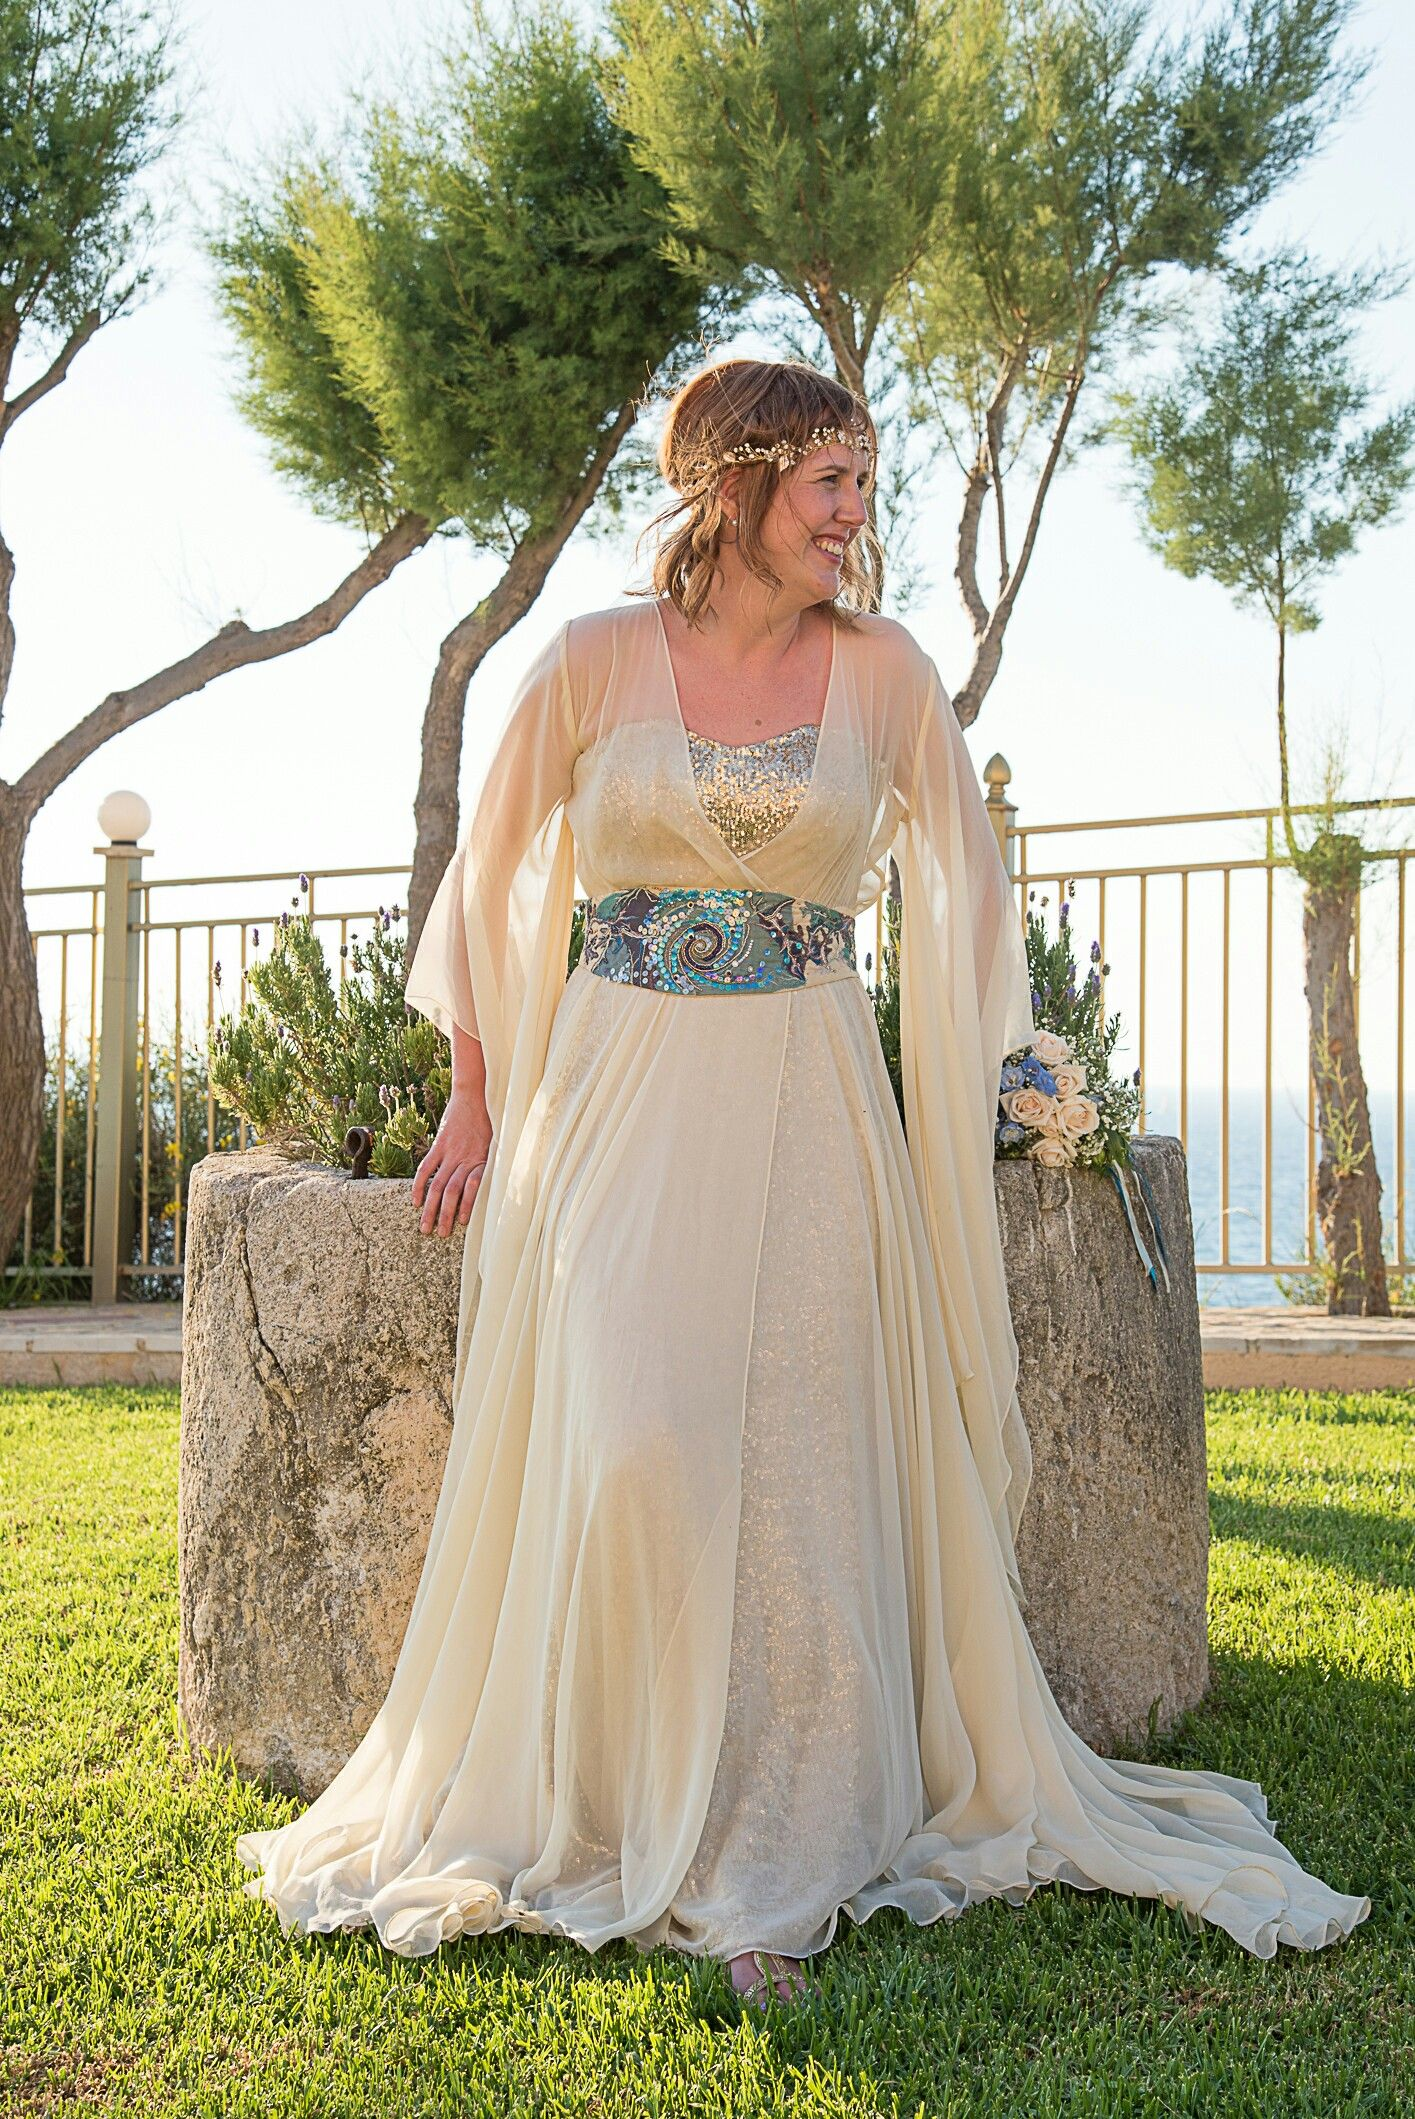 Meet Sharon our gorgeous greek goddess of a bride xx she chose our AURORA kimono and sequinned gold  dress for her Greek Islands wedding #alternativebride-  Remember it's your day your way.  #uniquewedding #goldweddingdress #vintagewedding #wedding # #alternativewedding #colourfulwedding #badassbride #rocknrollbride #rocknrollwedding #bespokeweddingdress #bespokeembroideries #bohobride #bohoeddingdress #weddingdress # kimono #aurora